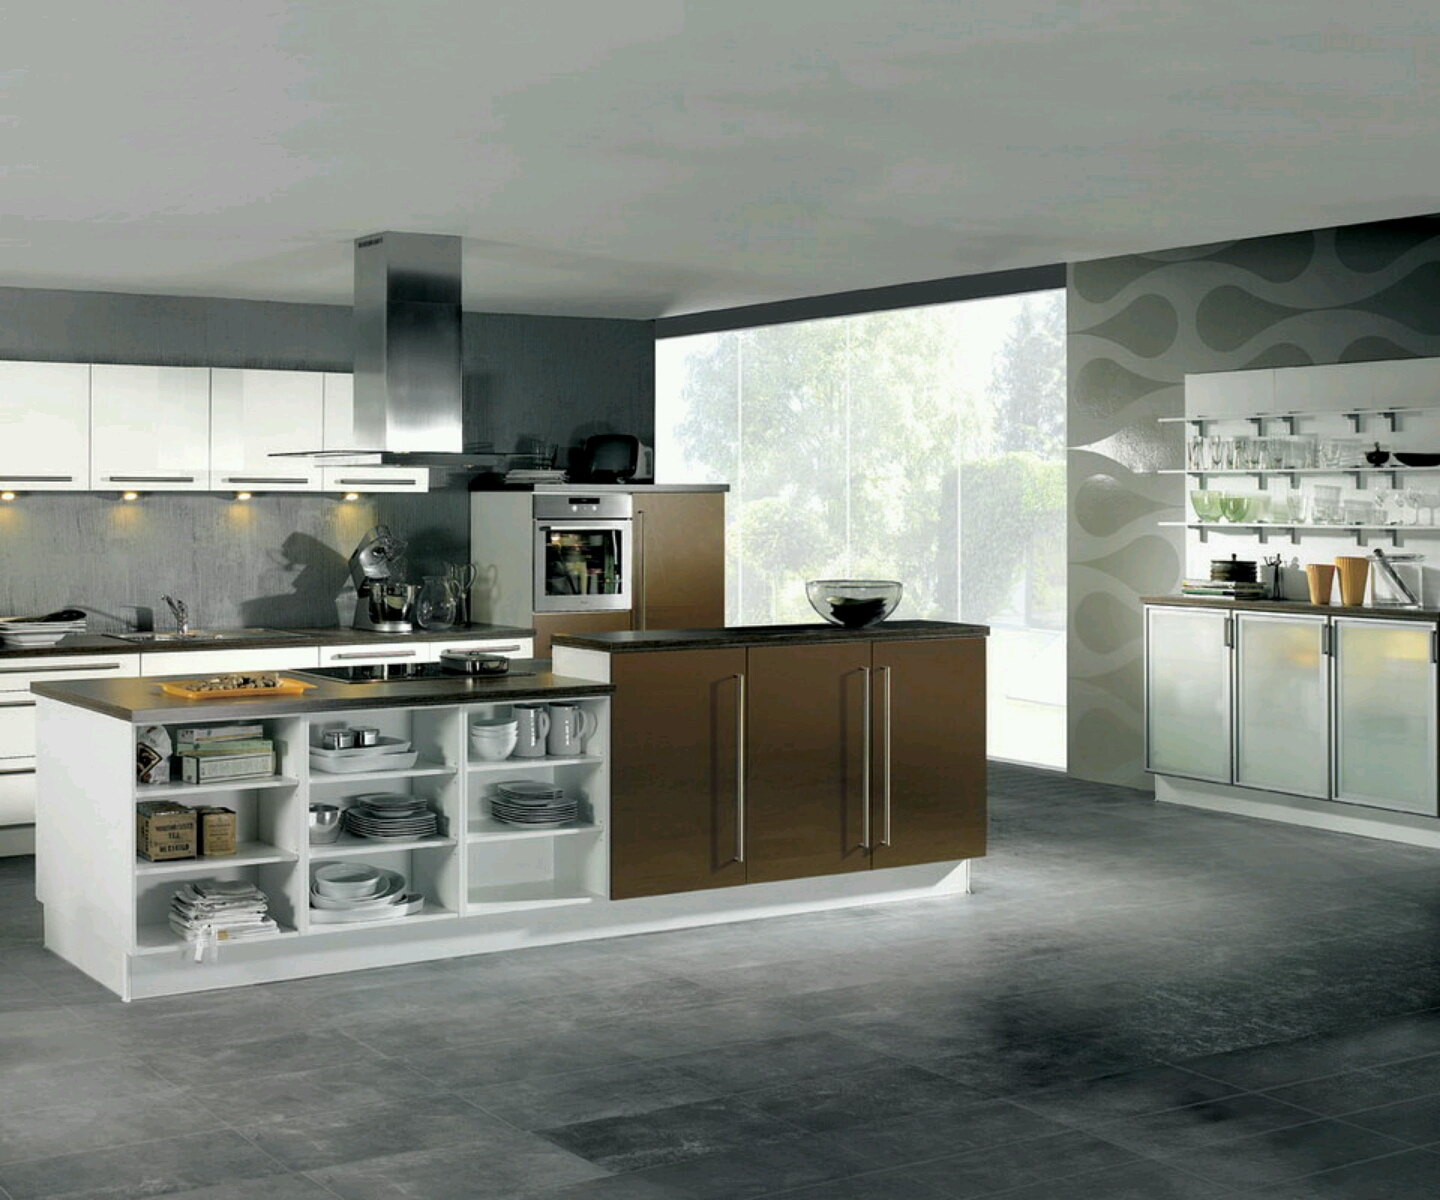 New home designs latest ultra modern kitchen designs ideas for New kitchen ideas